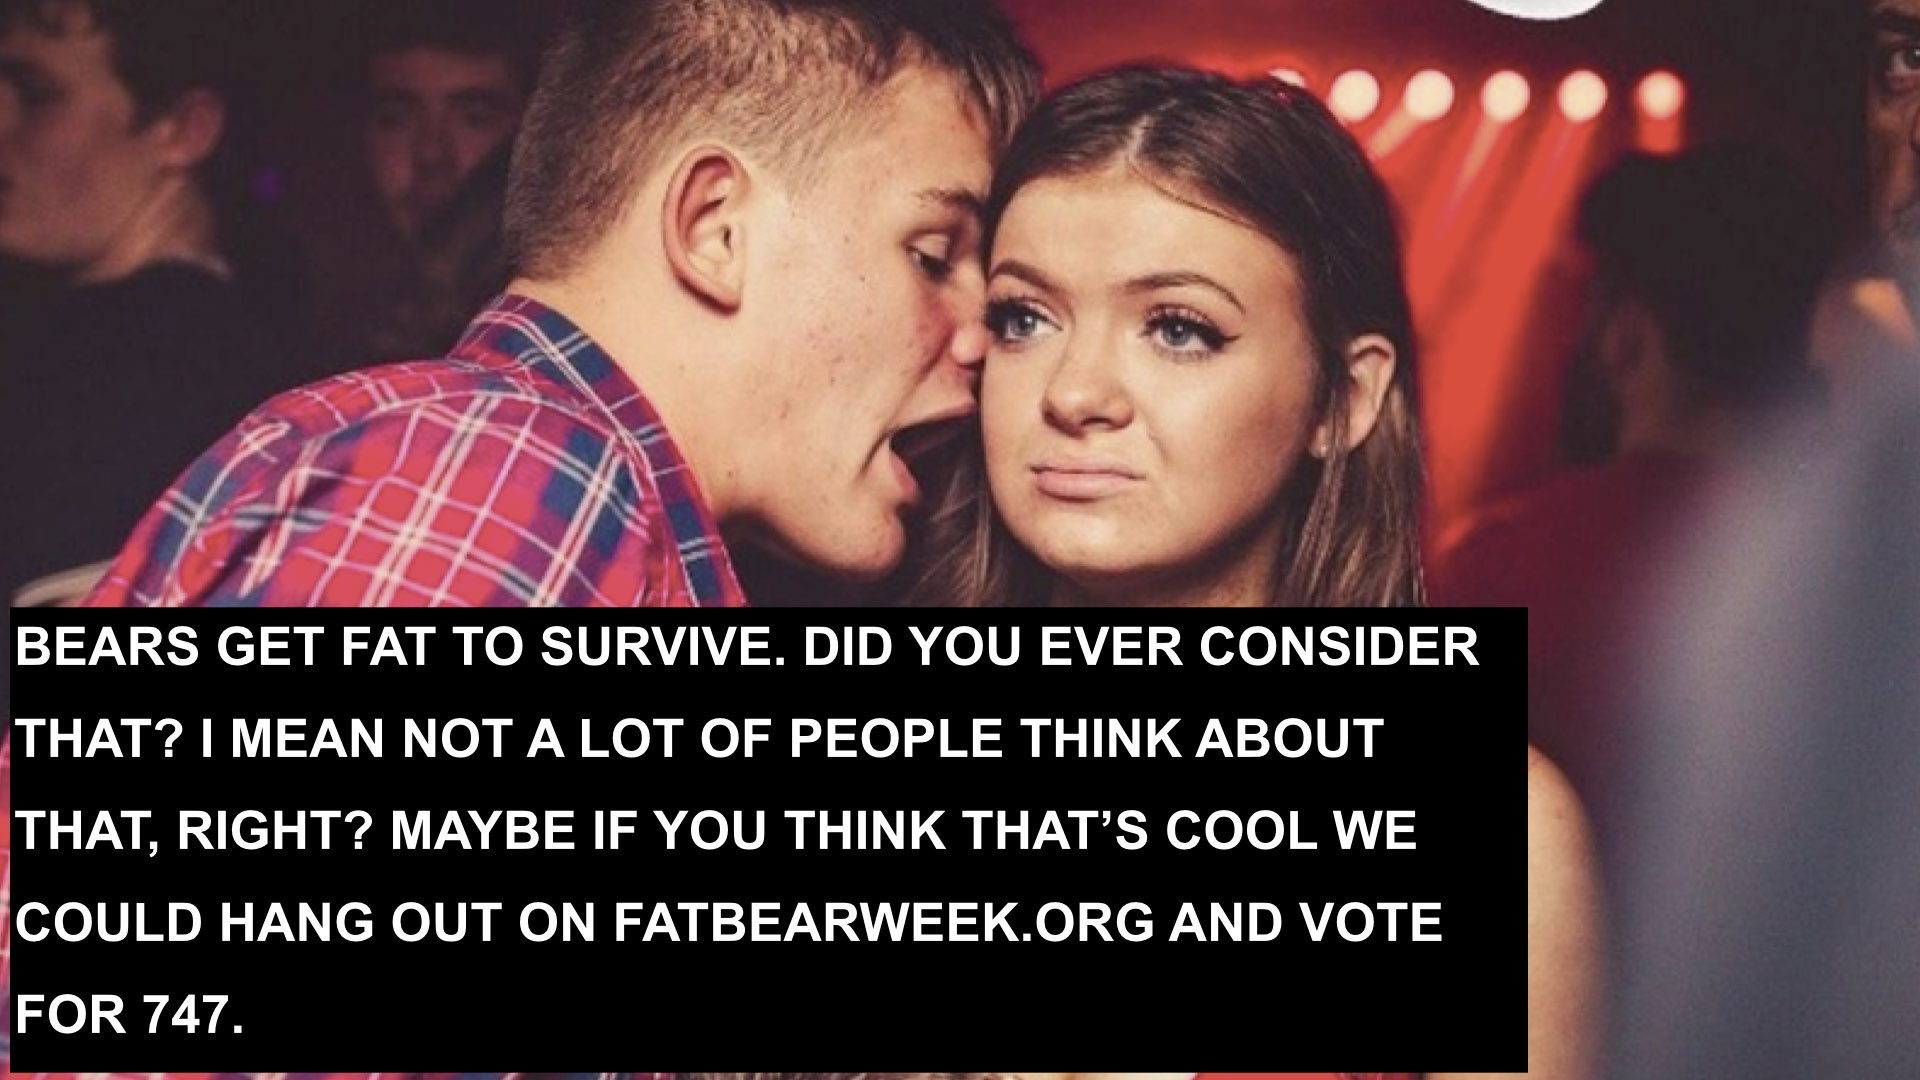 """photo of man leaning close to a woman's ear to talk to her. Woman stairs ahead with a bored look. Text reads in all caps, """"BEARS GET FAT TO SURVIVE. DID YOU EVER CONSIDER THAT? I MEAN NOT A LOT OF PEOPLE THINK ABOUT THAT, RIGHT? MAYBE IF YOU THINK THAT'S COOL WE COULD HANG OUT ON FATBEARWEEK.ORG AND VOTE FOR 747."""""""